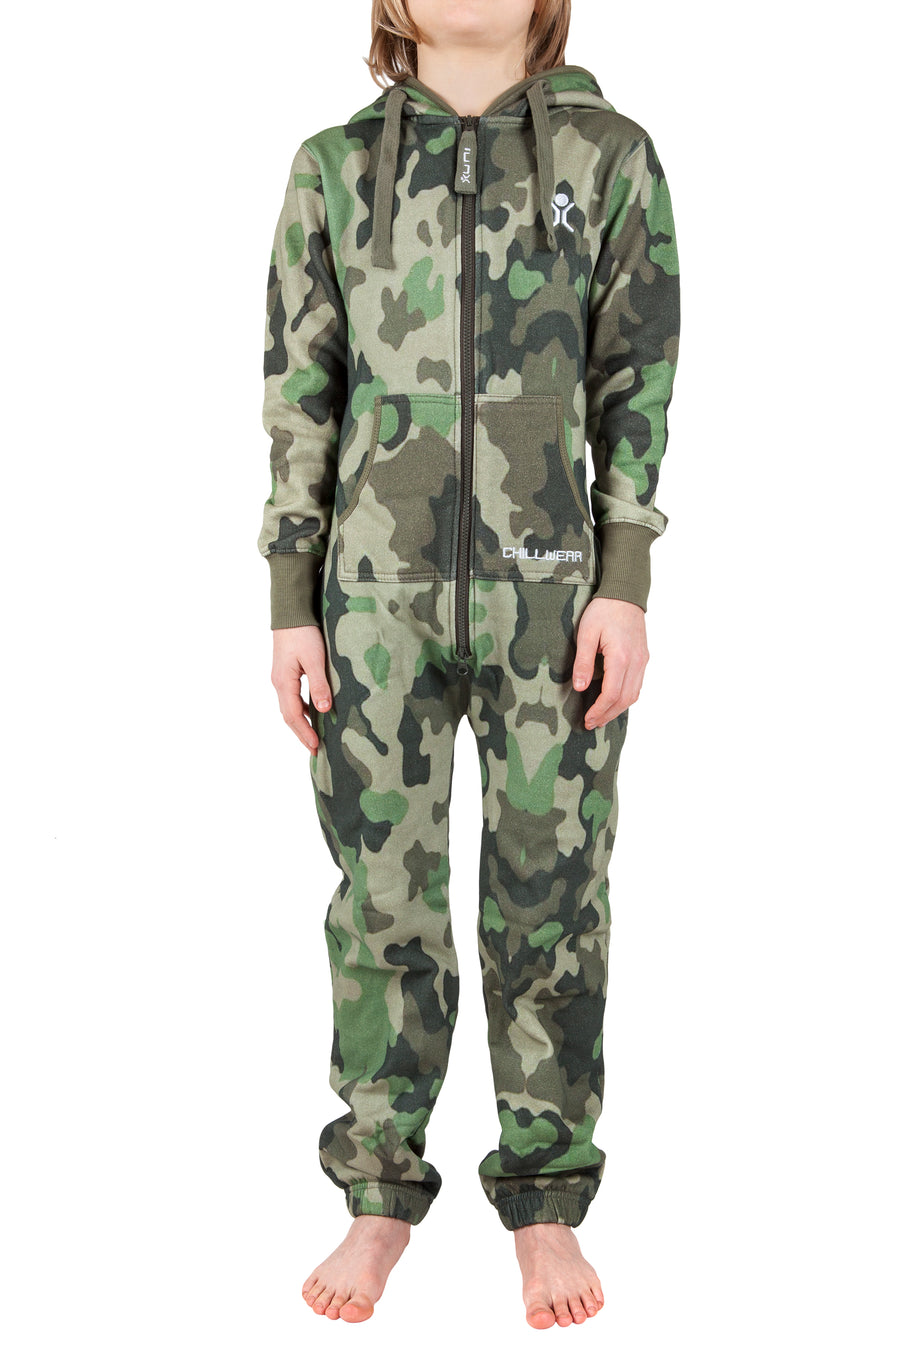 Camo Green Kids Onesie